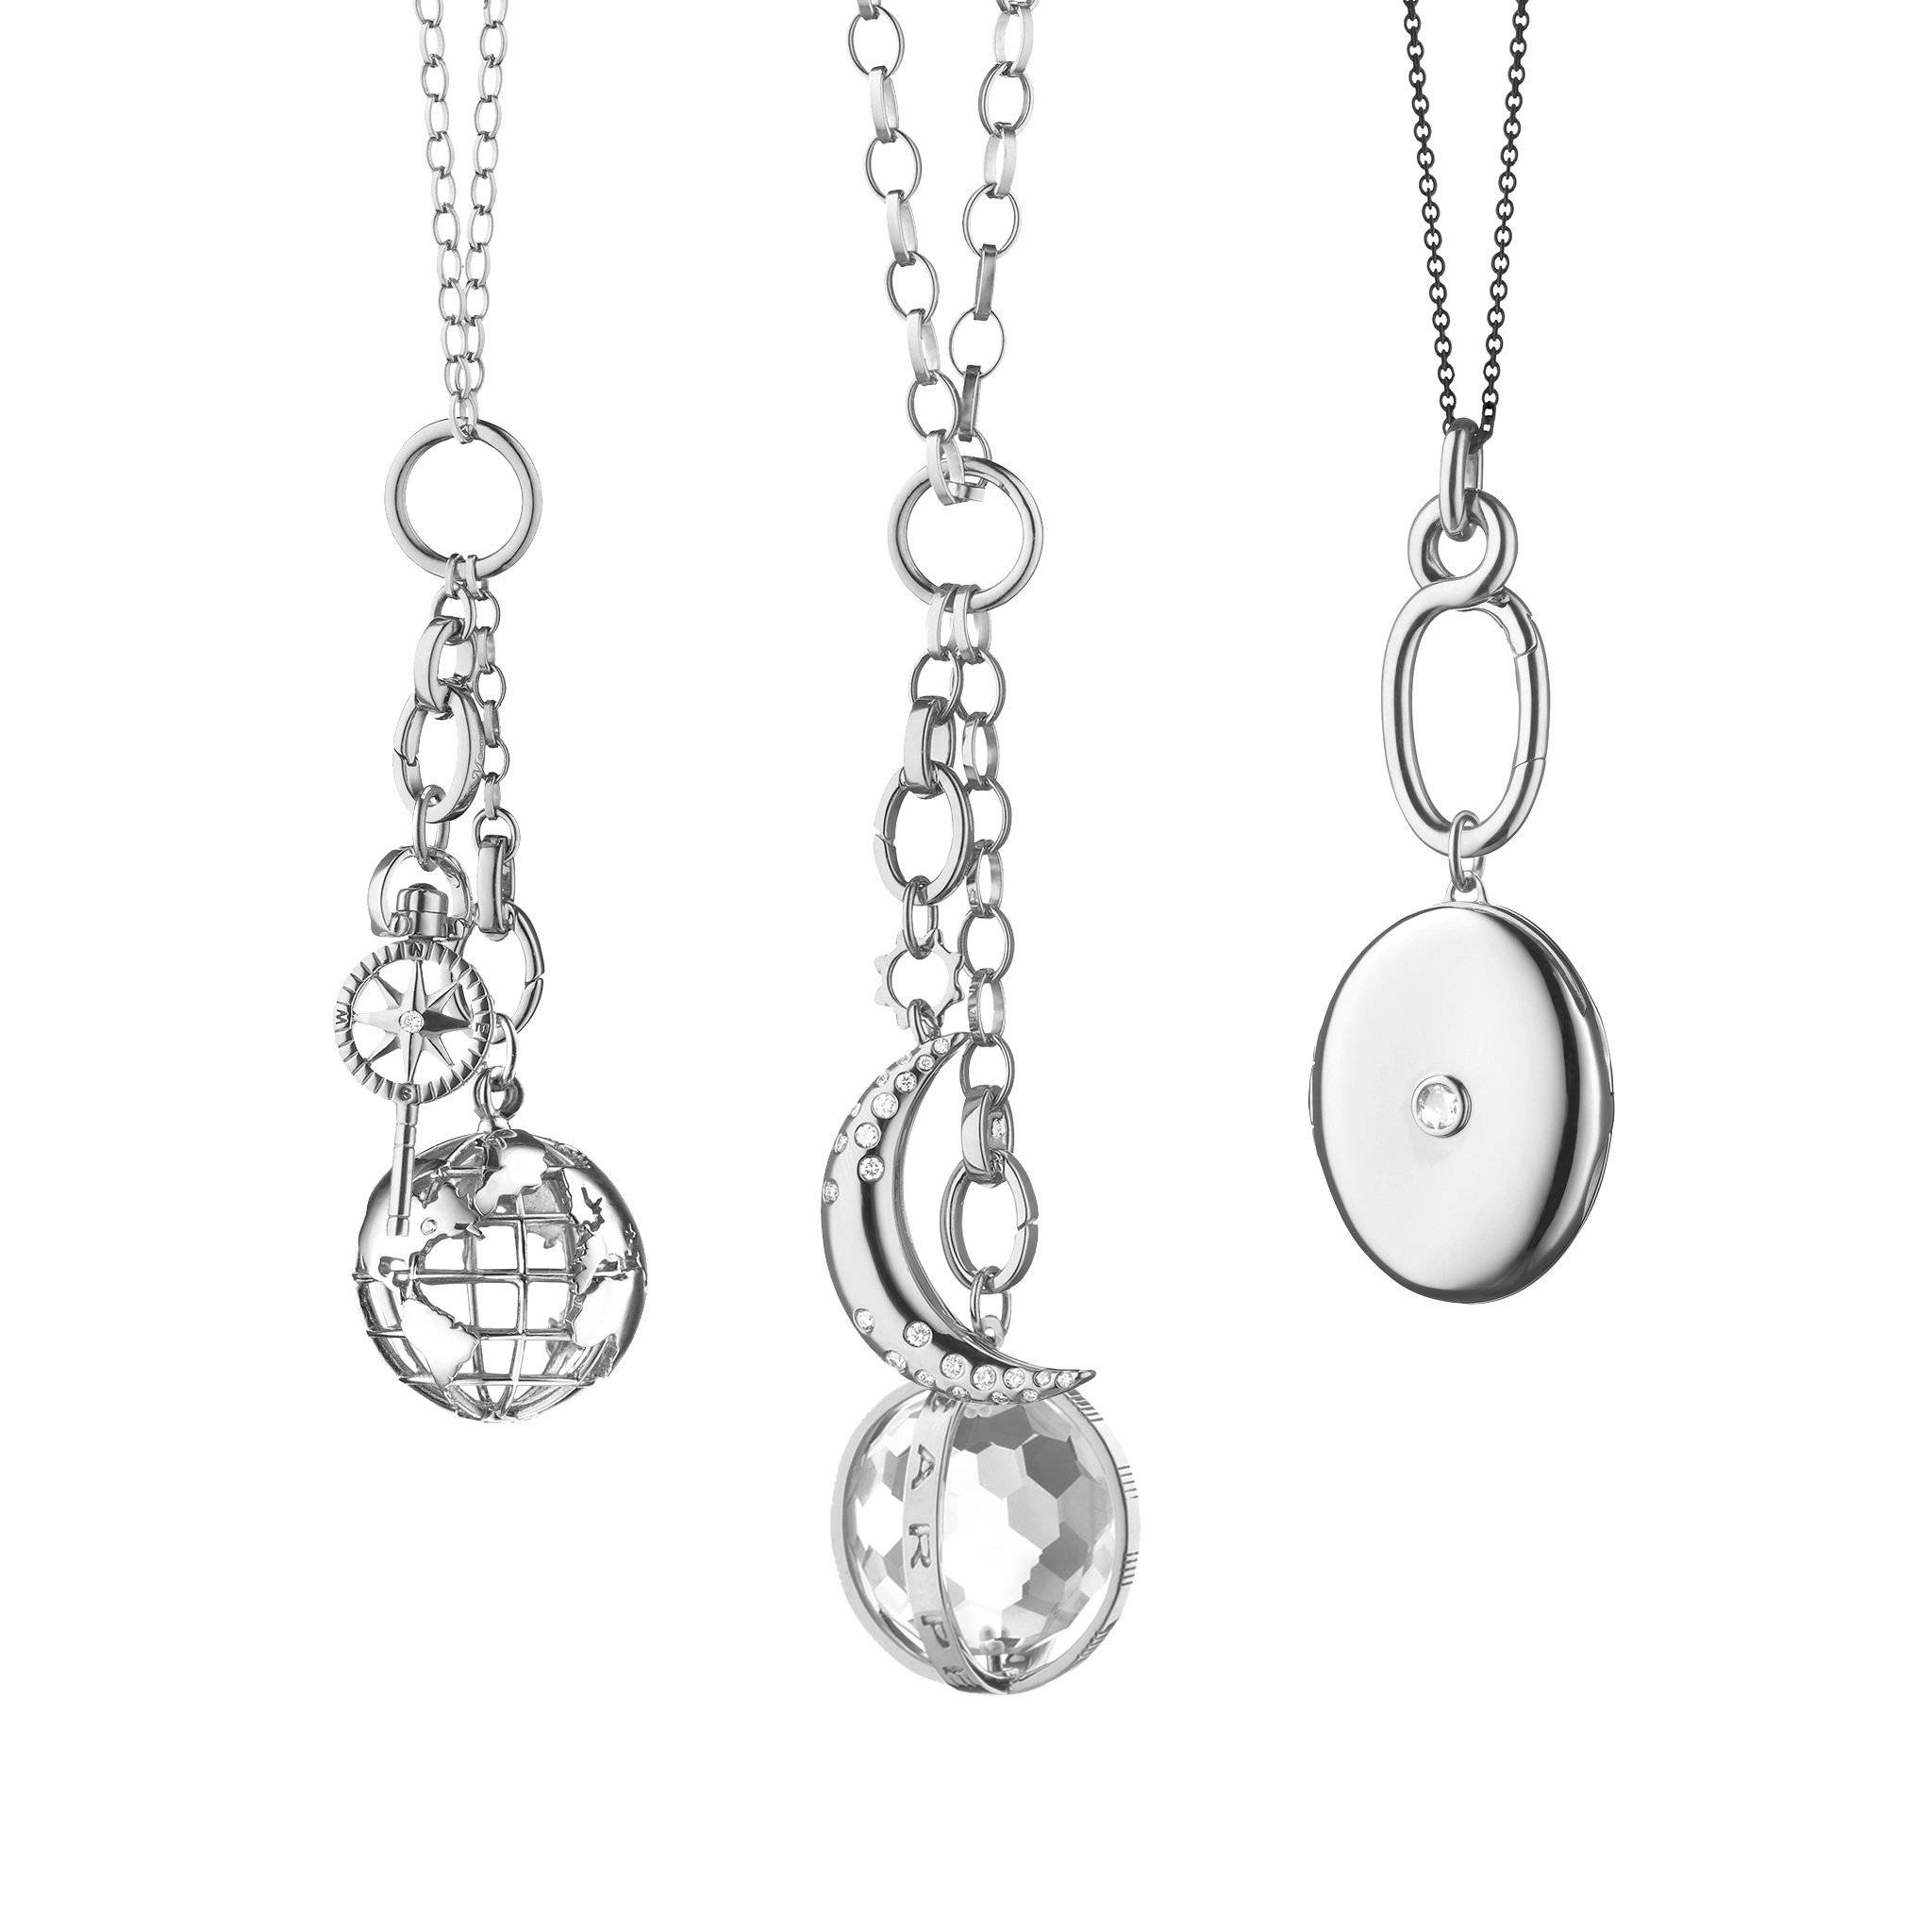 design your own charm necklace in sterling silver